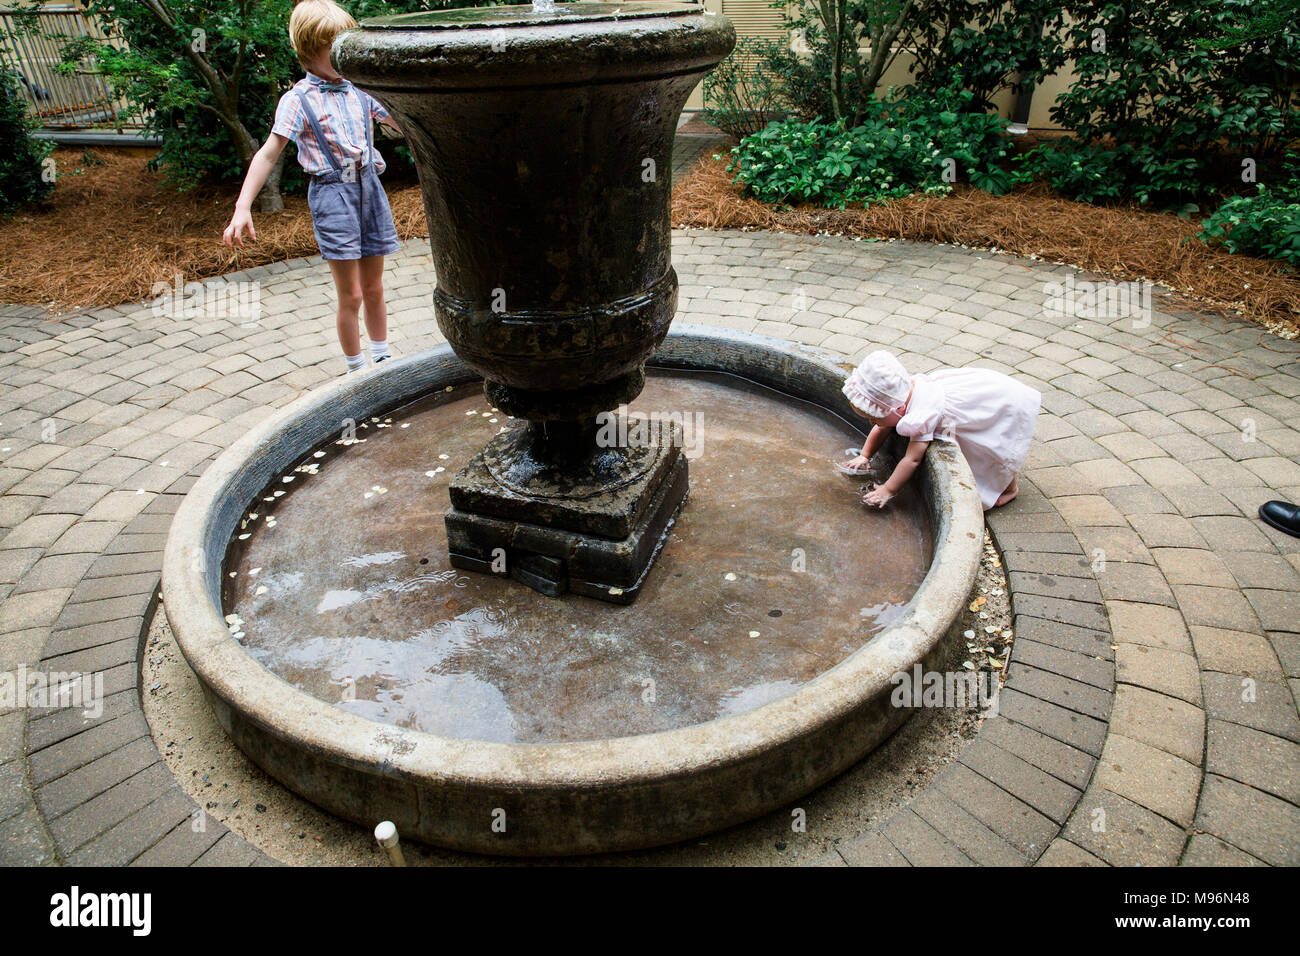 Baby and other children playing around fountain - Stock Image